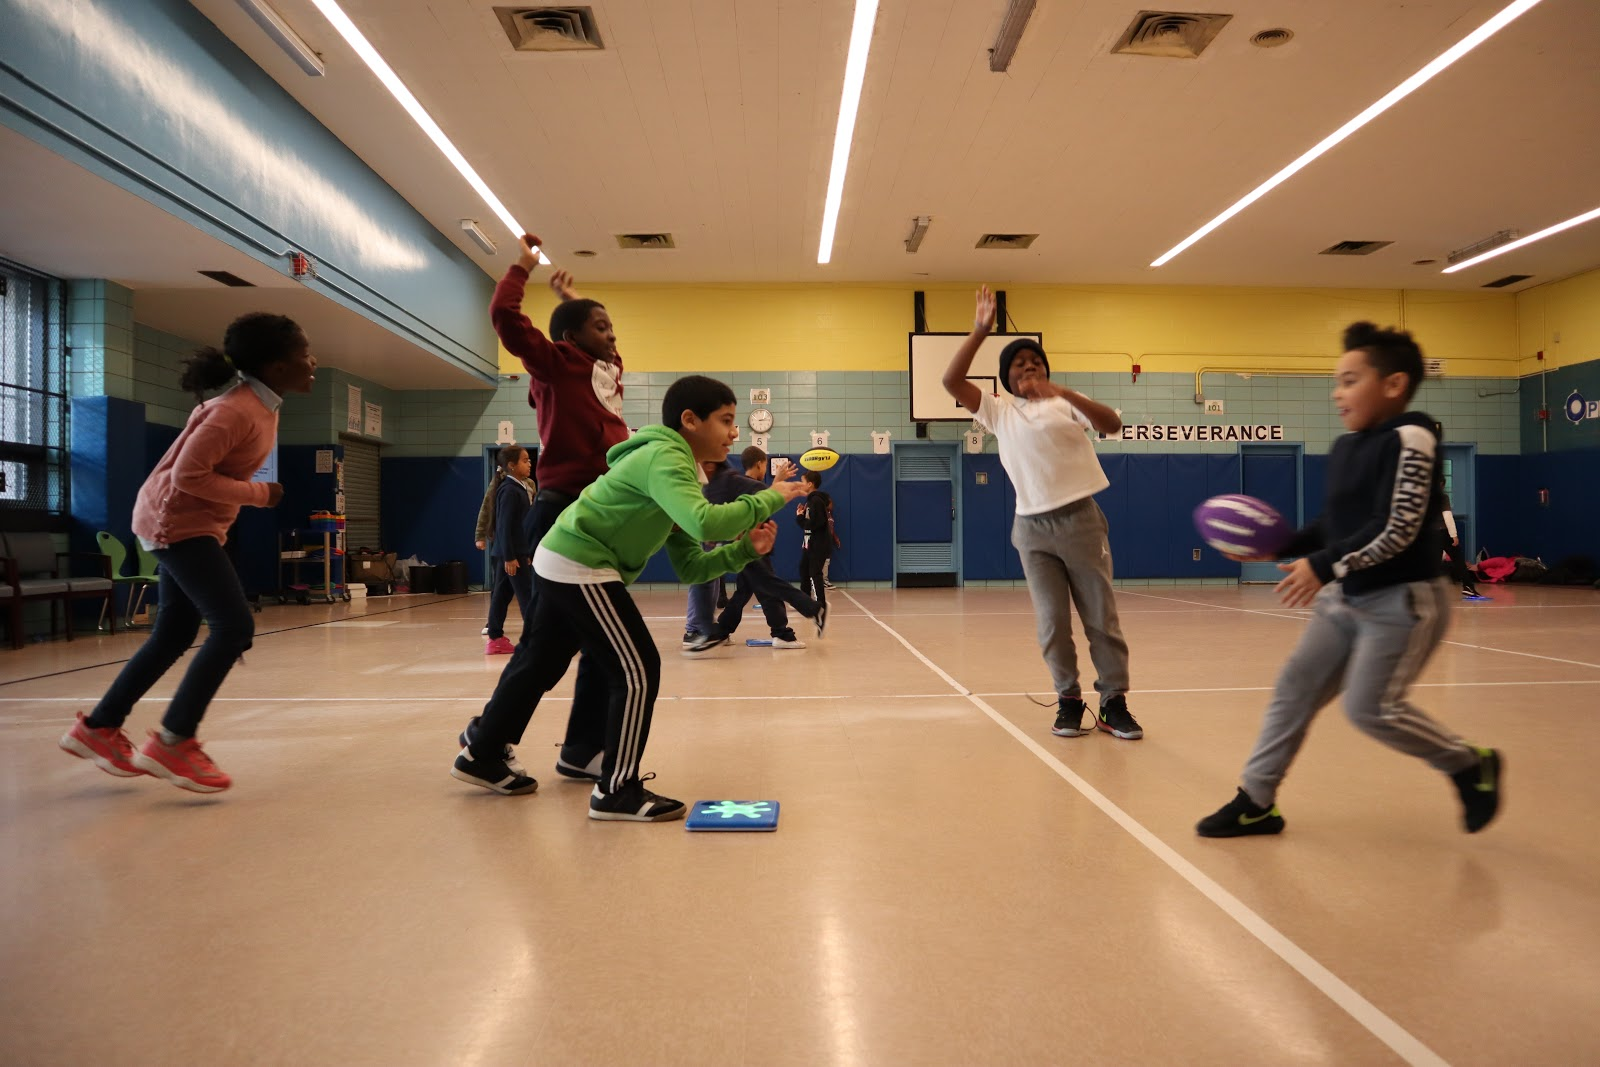 Students in the Bronx, NY bring computer science to their PE class with Splats.